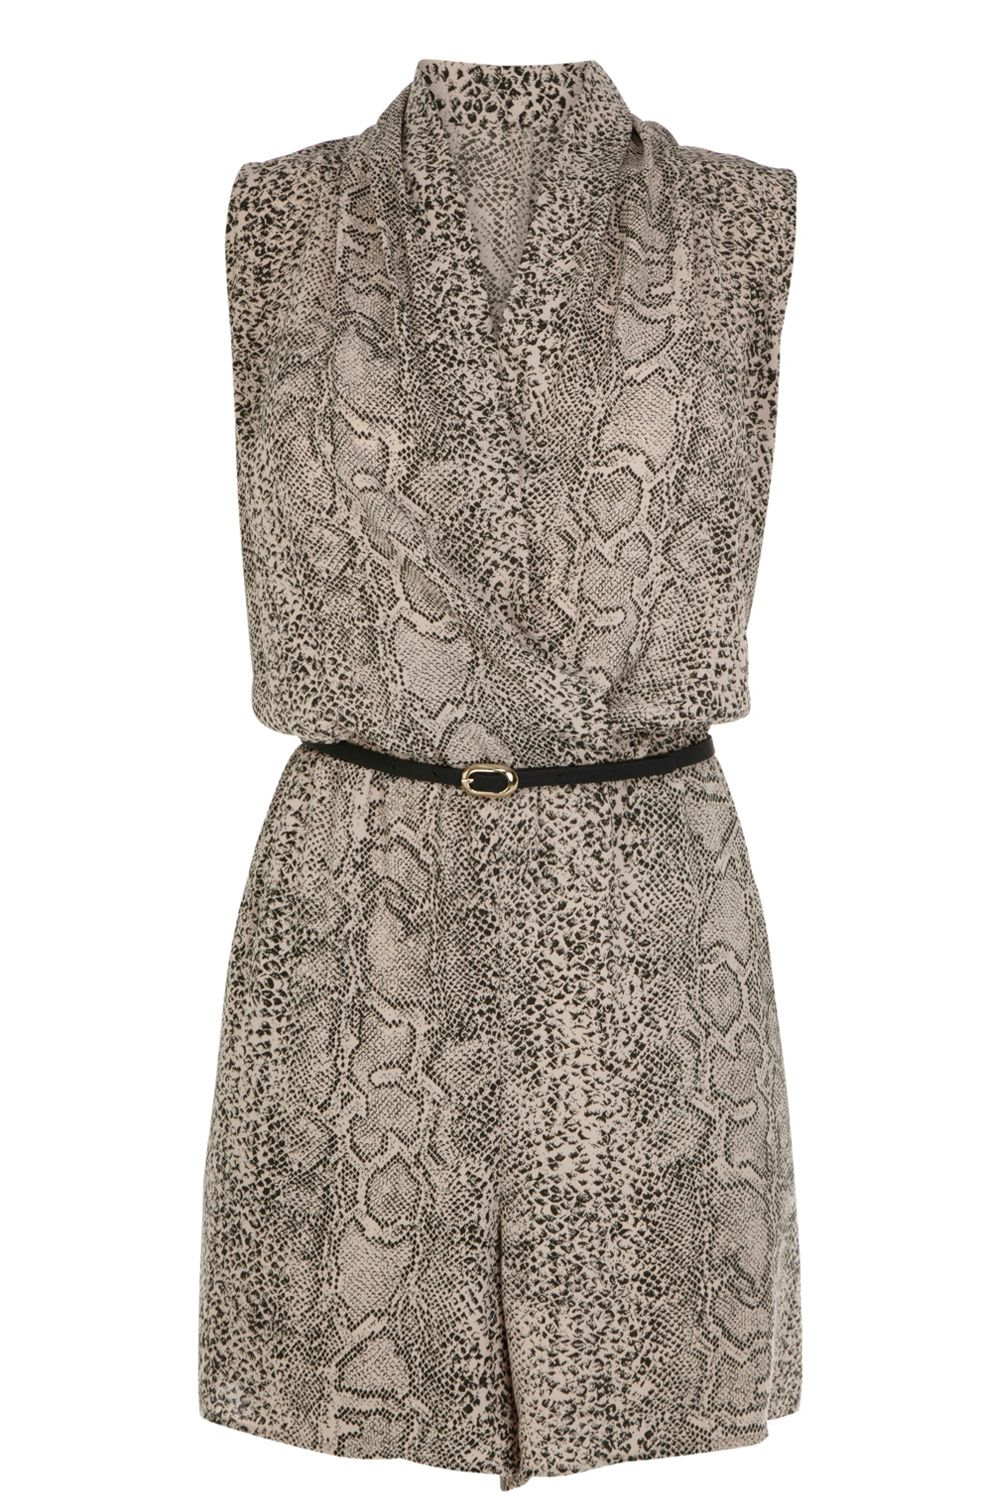 Snake cowl playsuit